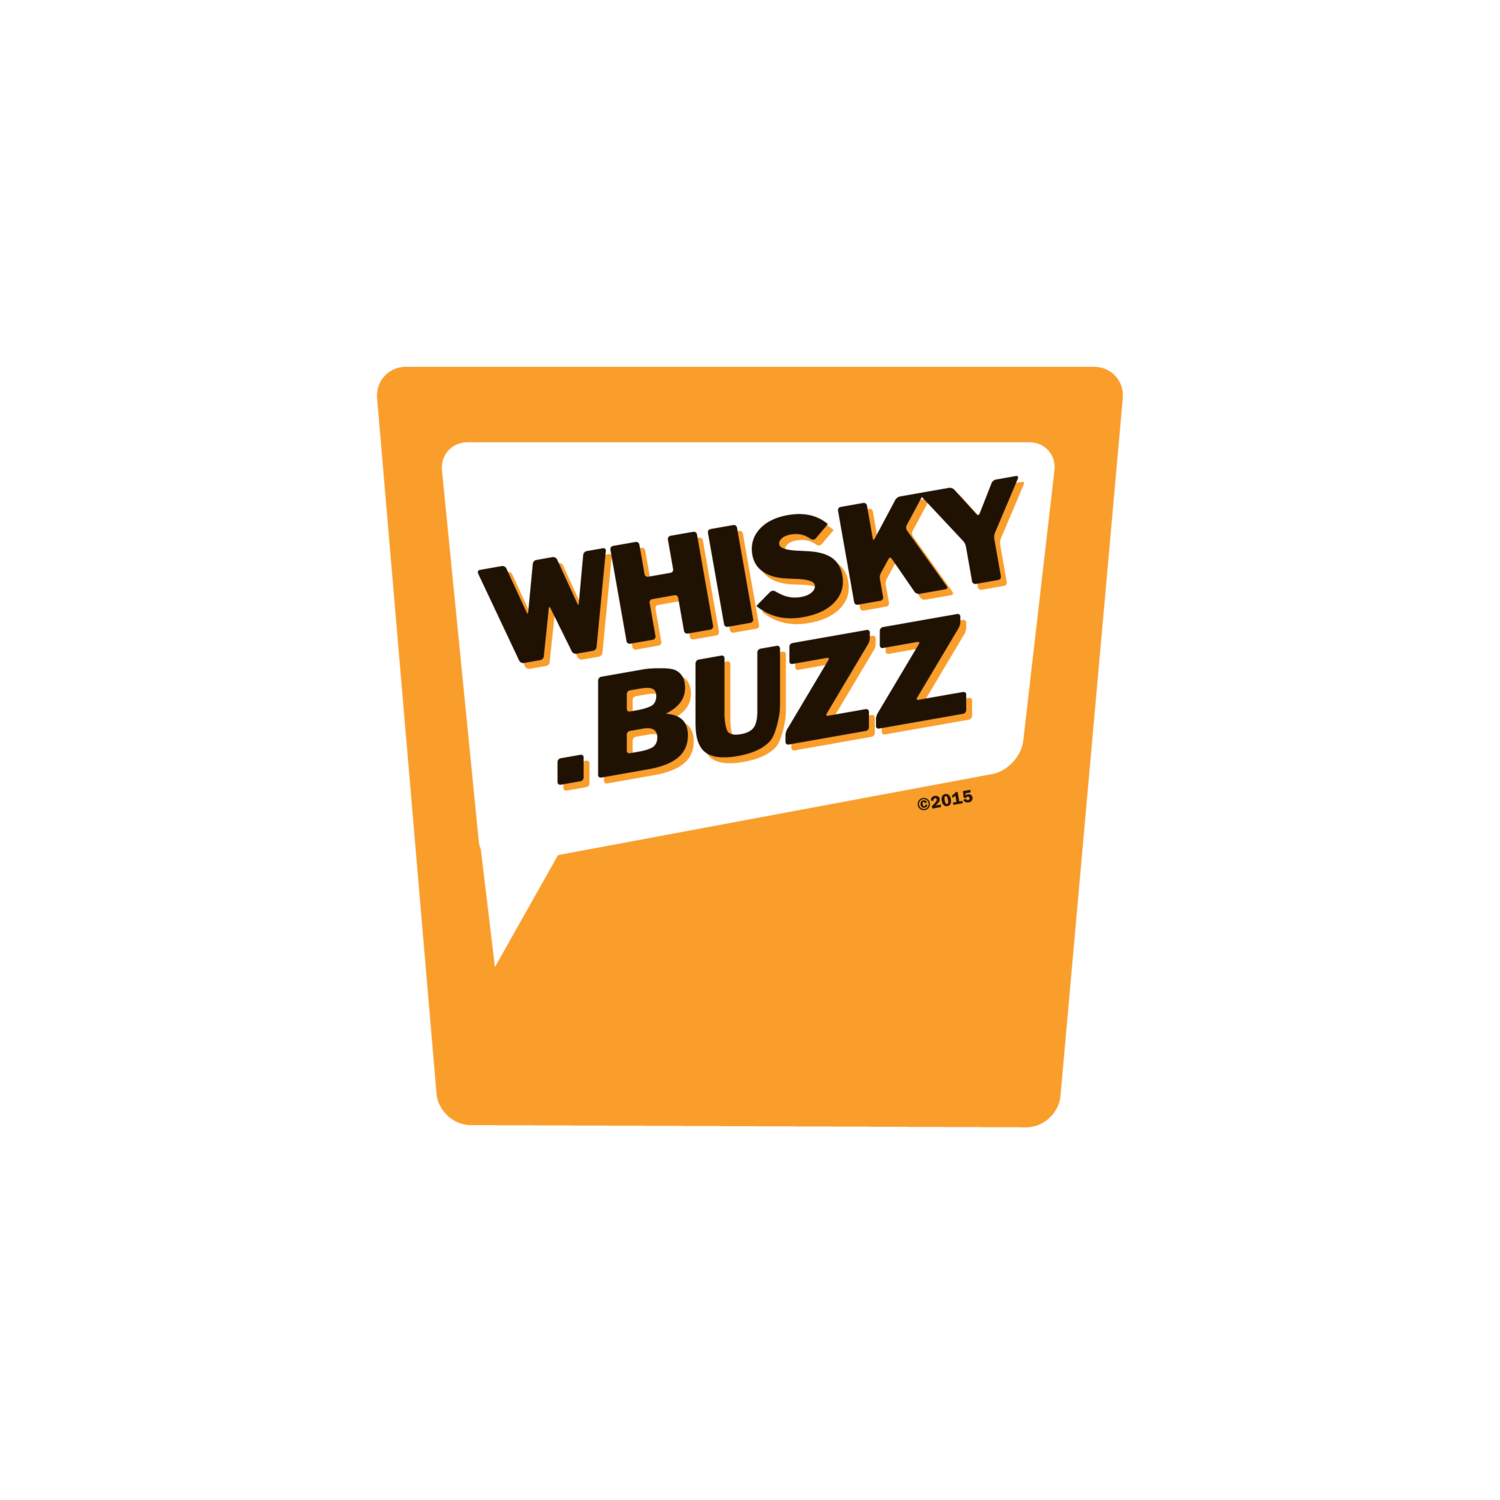 whisky.buzz